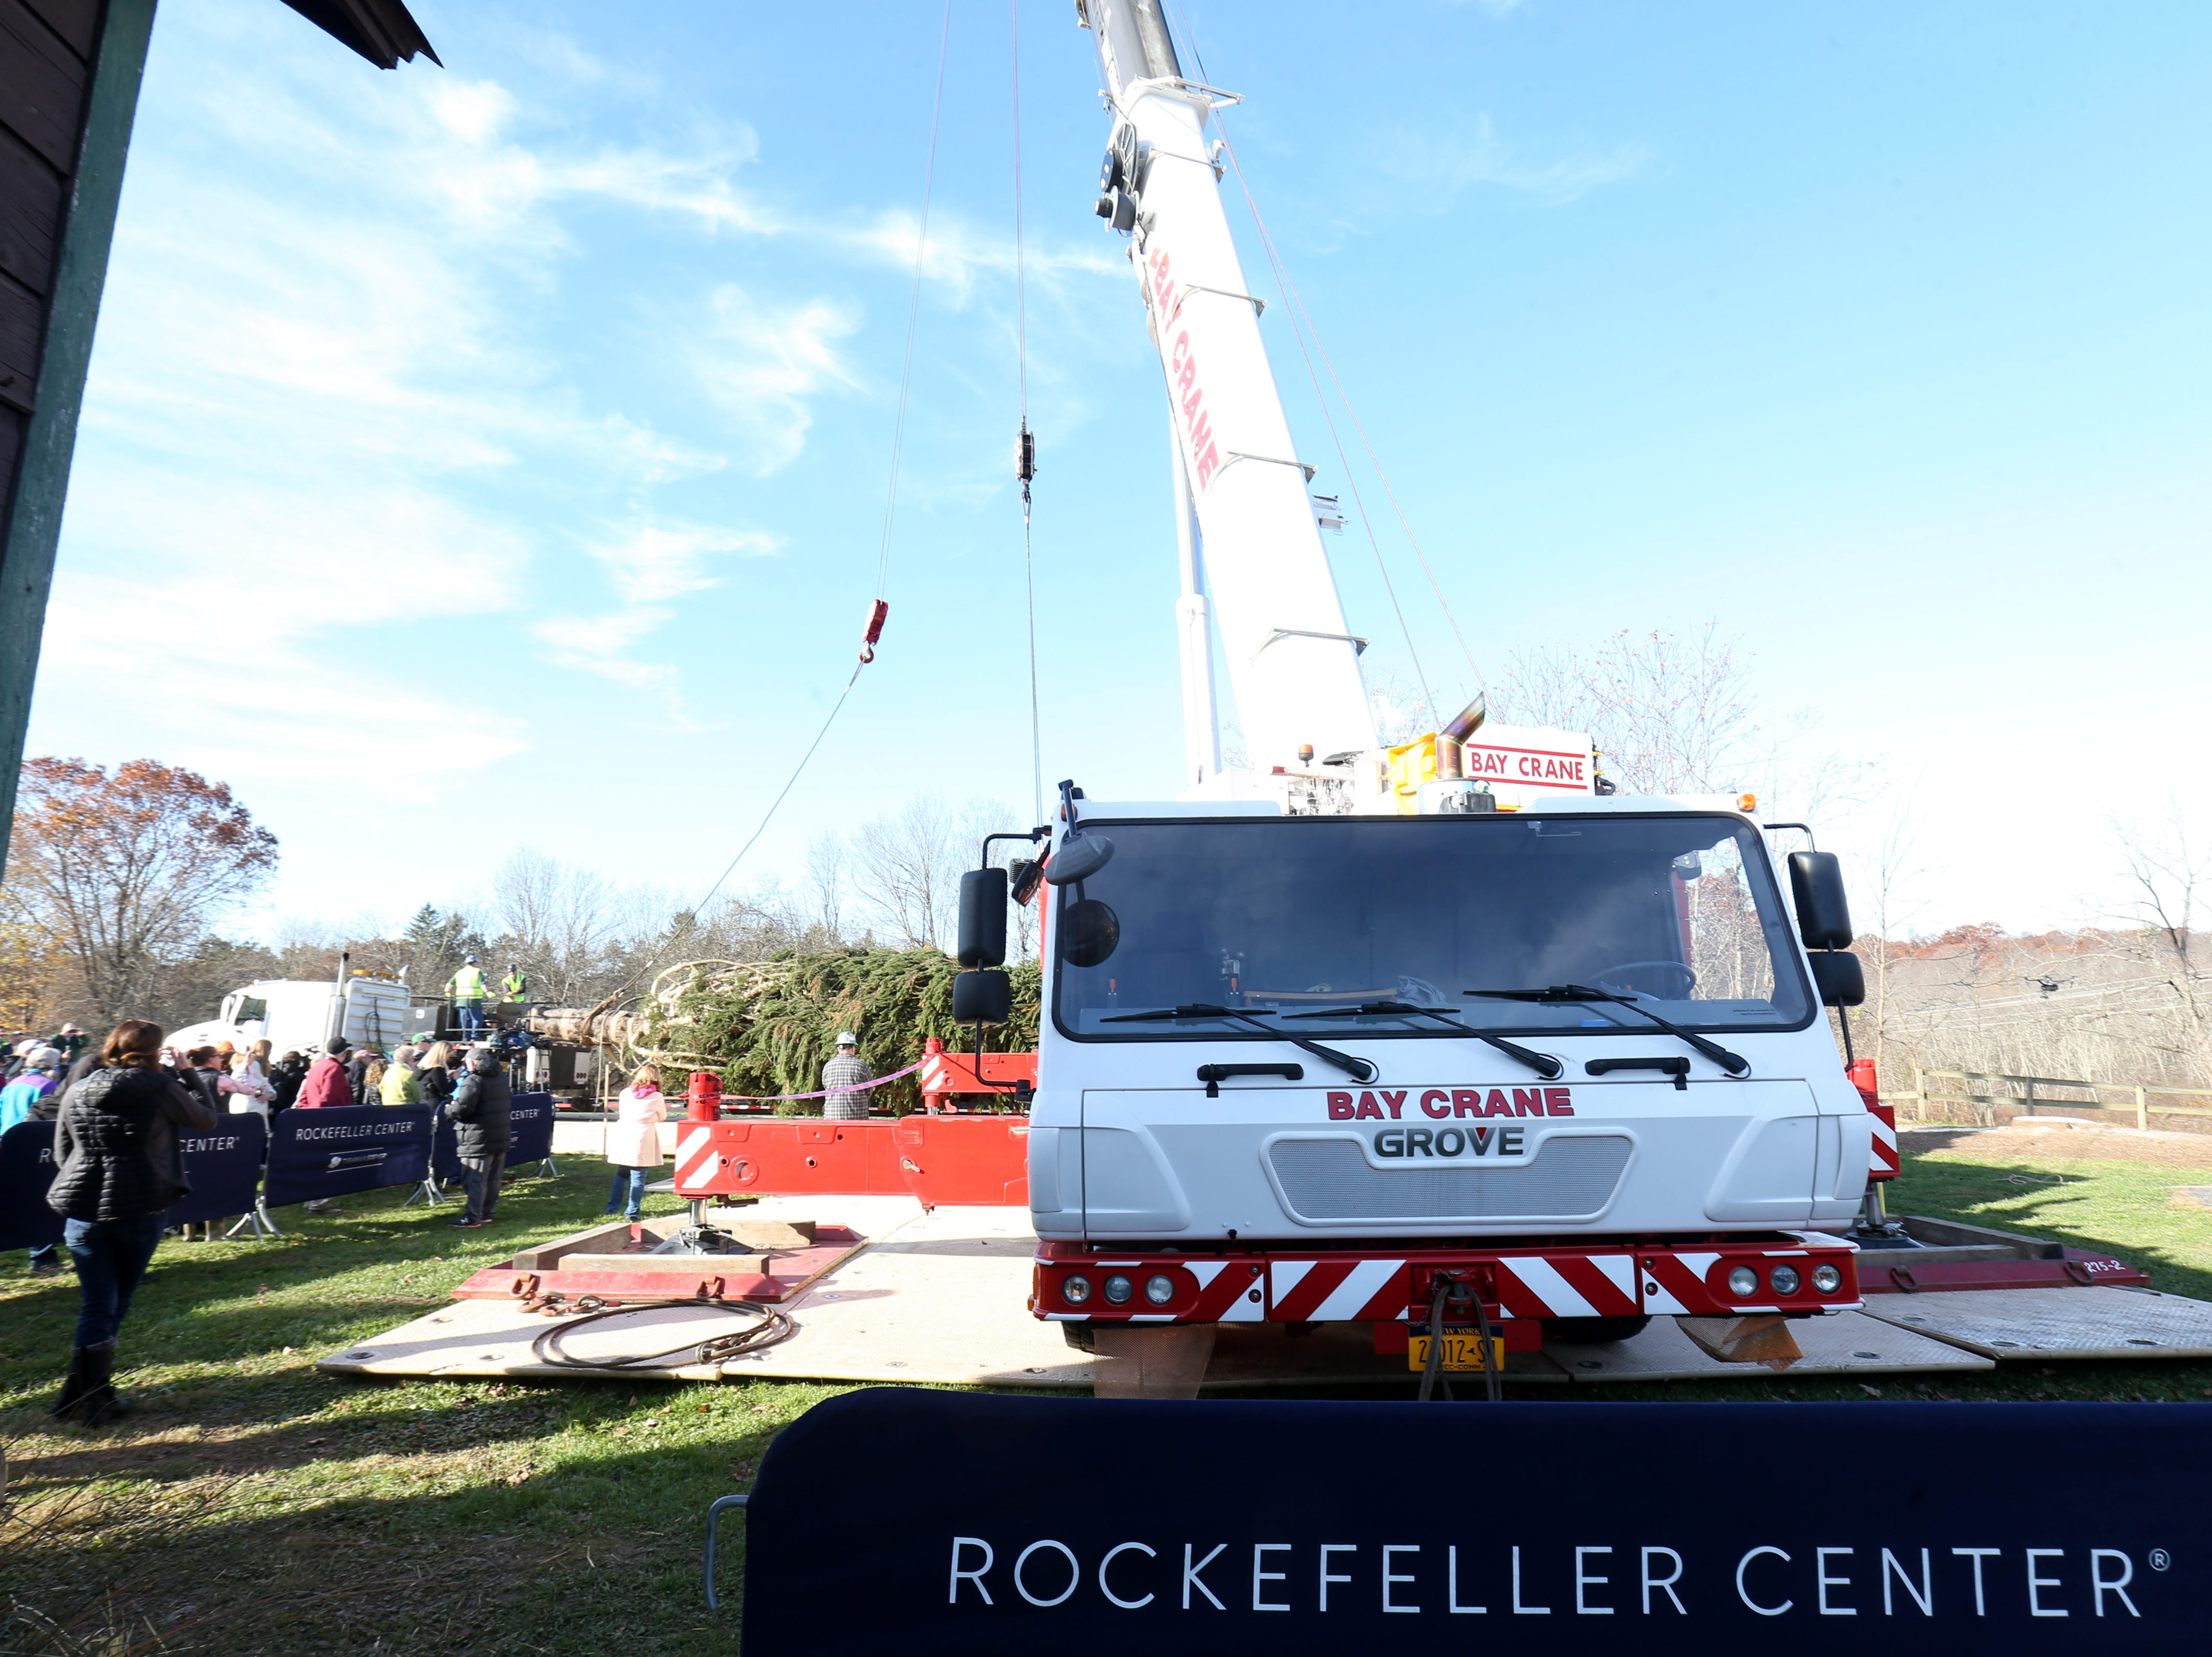 A crew from Rockefeller Center harvest a Norway Spruce tree in Wallkill for the 2018 Rockefeller Center Christmas Tree on November 8, 2018.